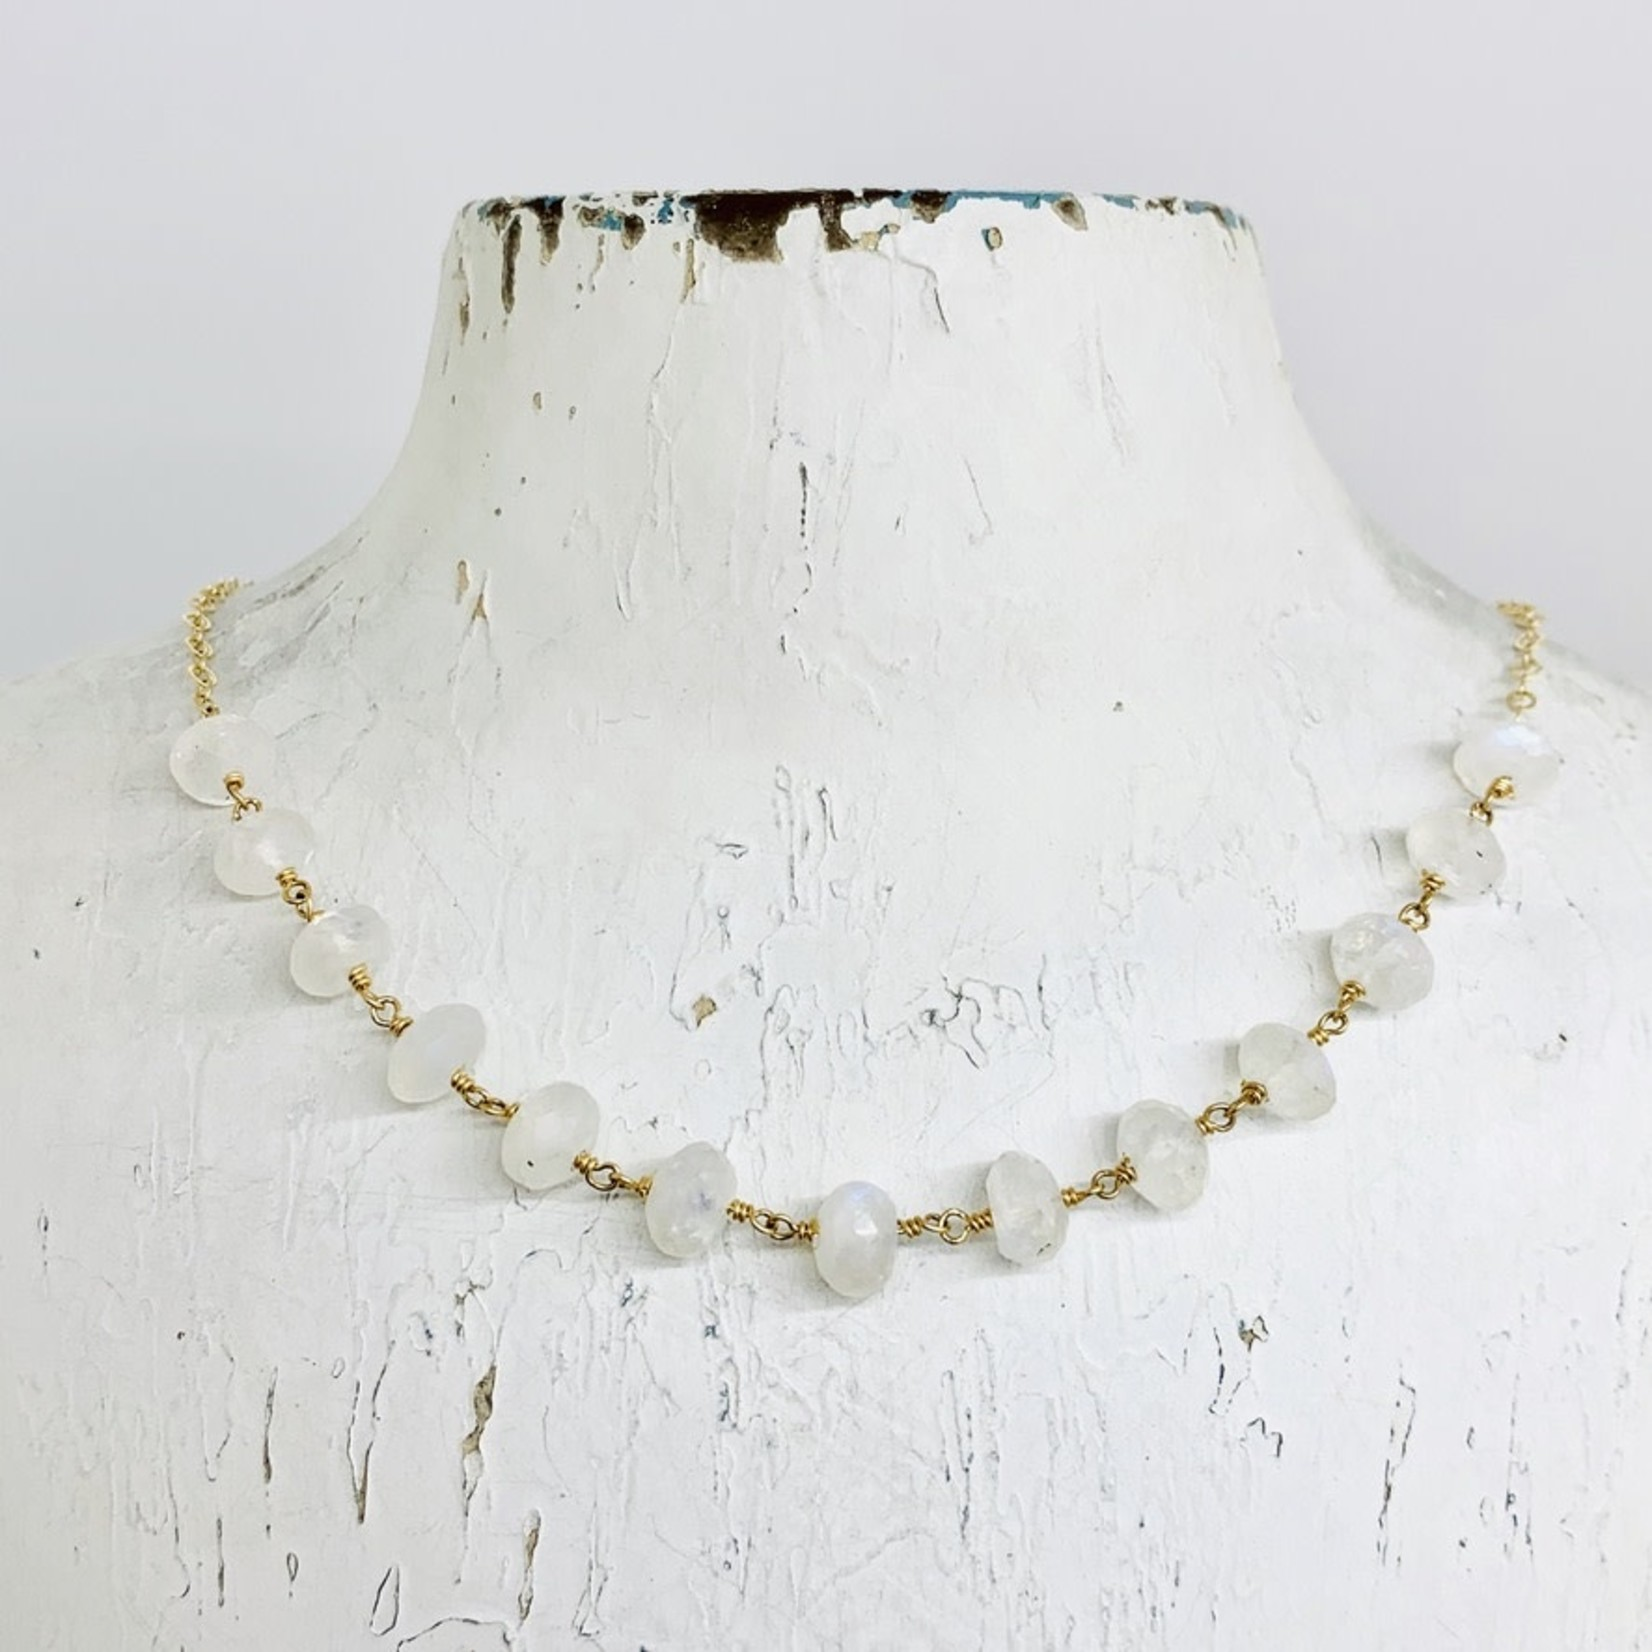 Handmade Necklace with 13 rainbow moonstone joined, 14 k g.f. chain/wire, shiny chain